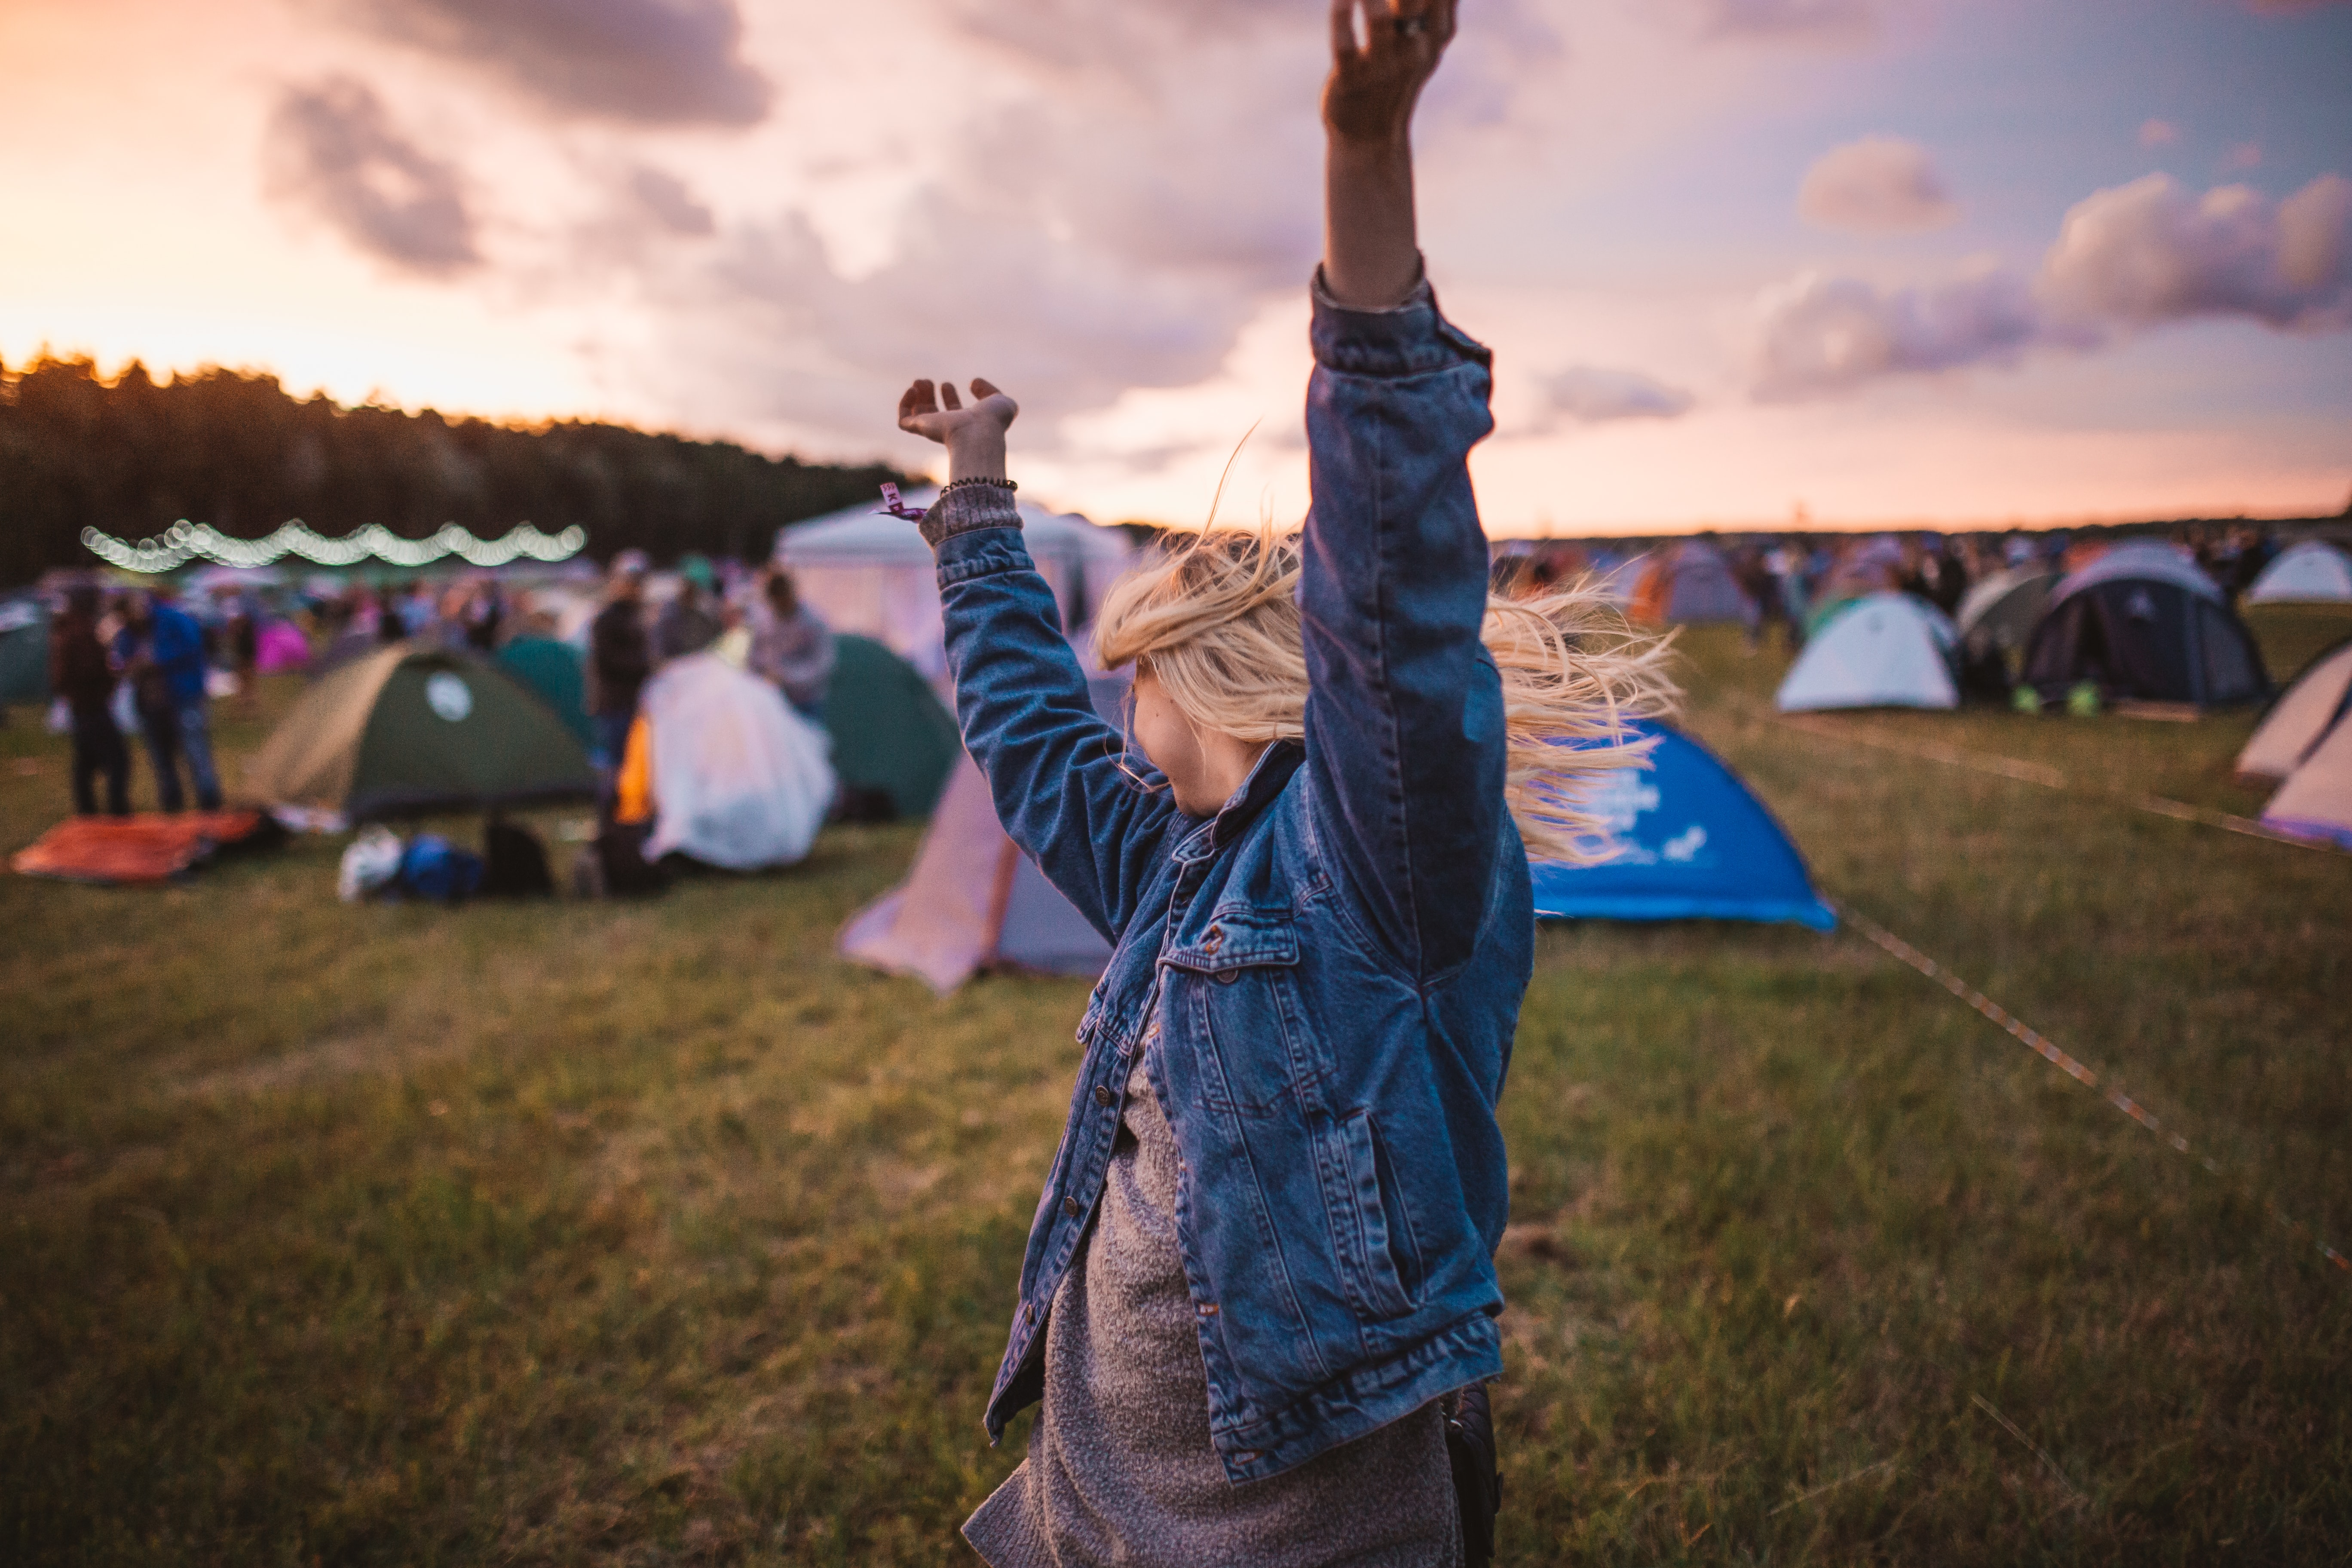 Young woman dances in field of tents